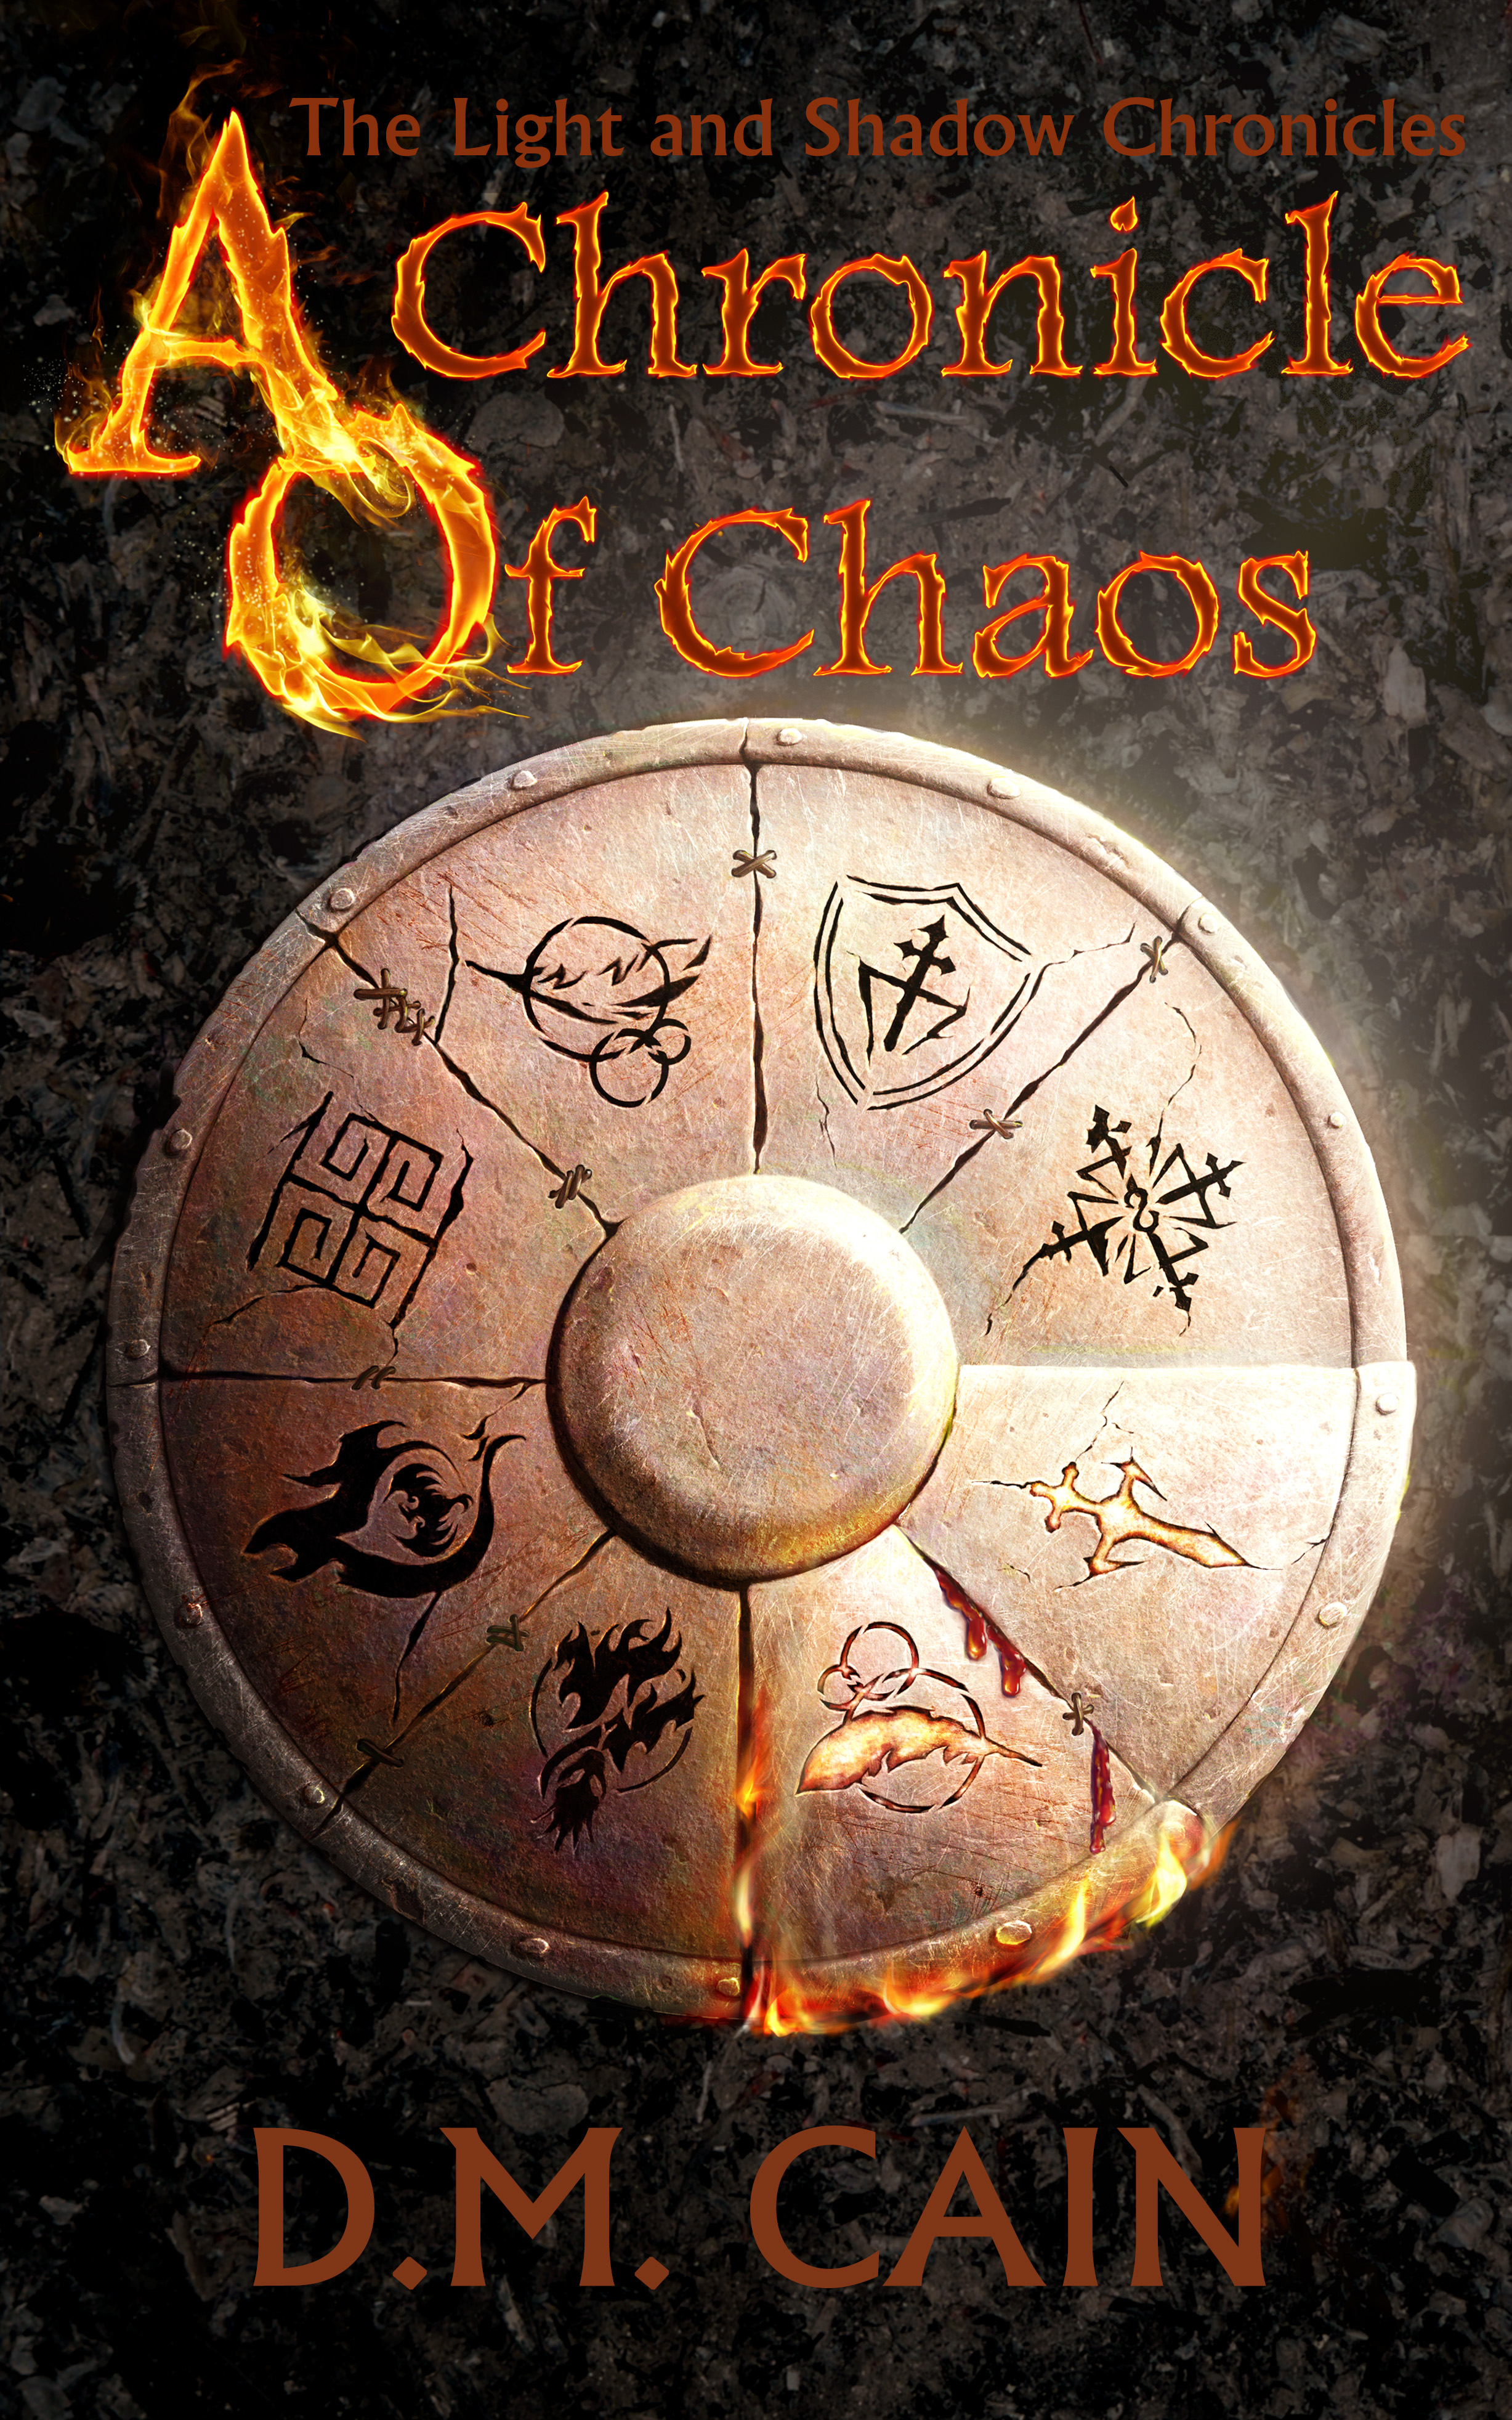 epic fantasy cover for A Chonicle of Chaos by DM Cain